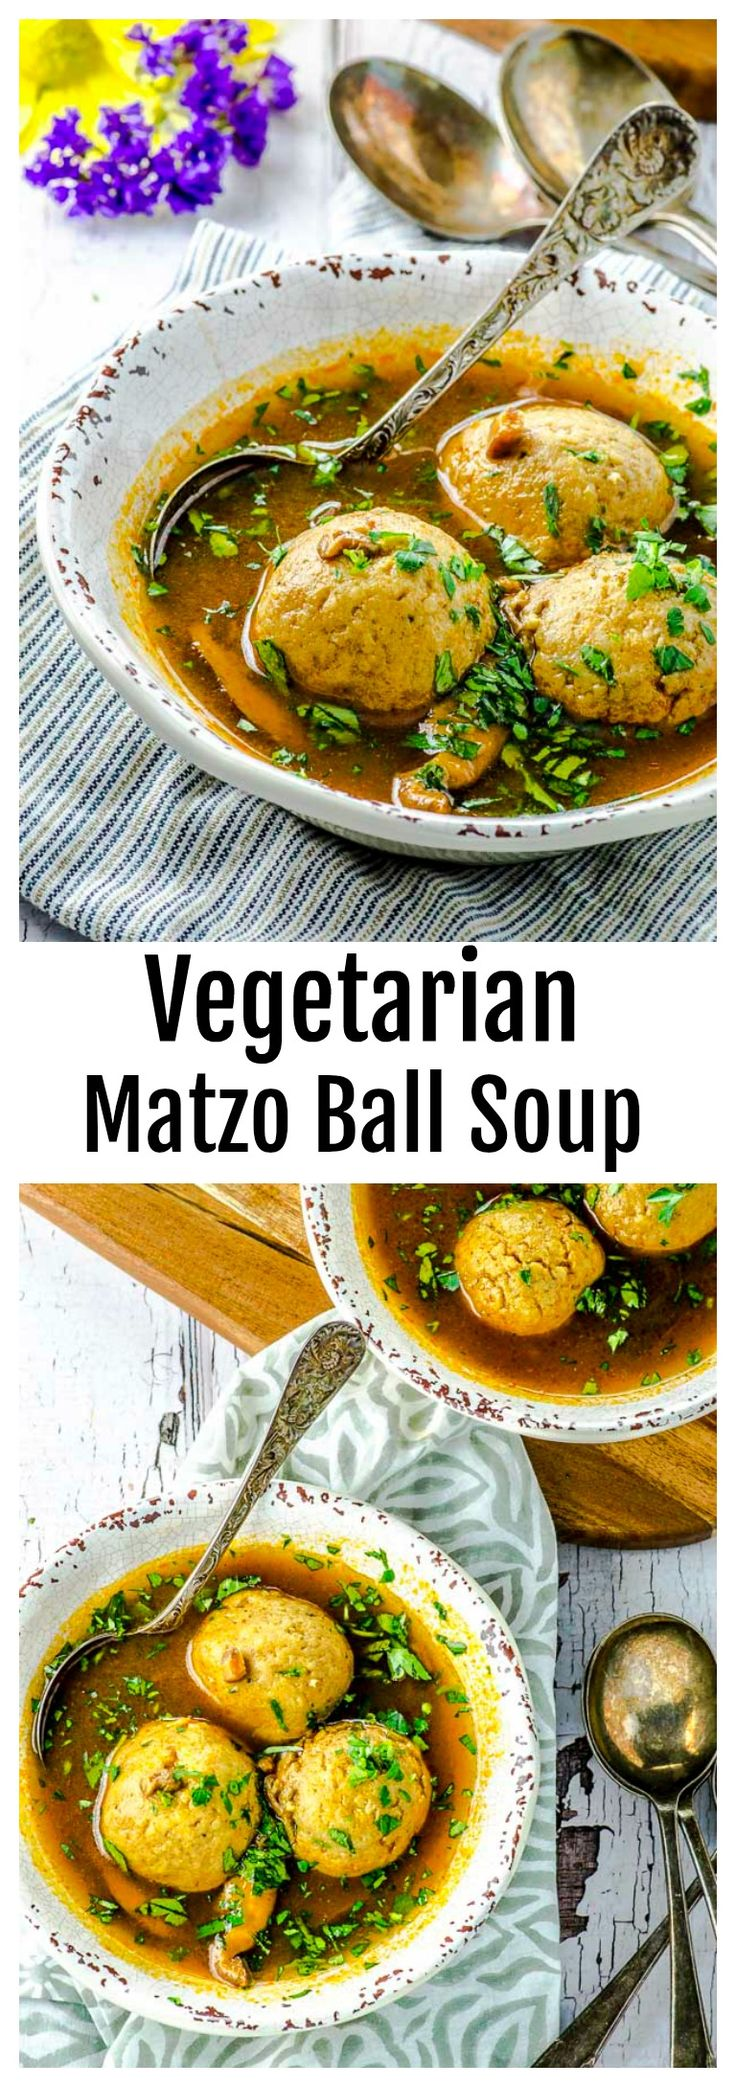 The Best Vegetarian Matzo Ball Soup - May I Have That Recipe